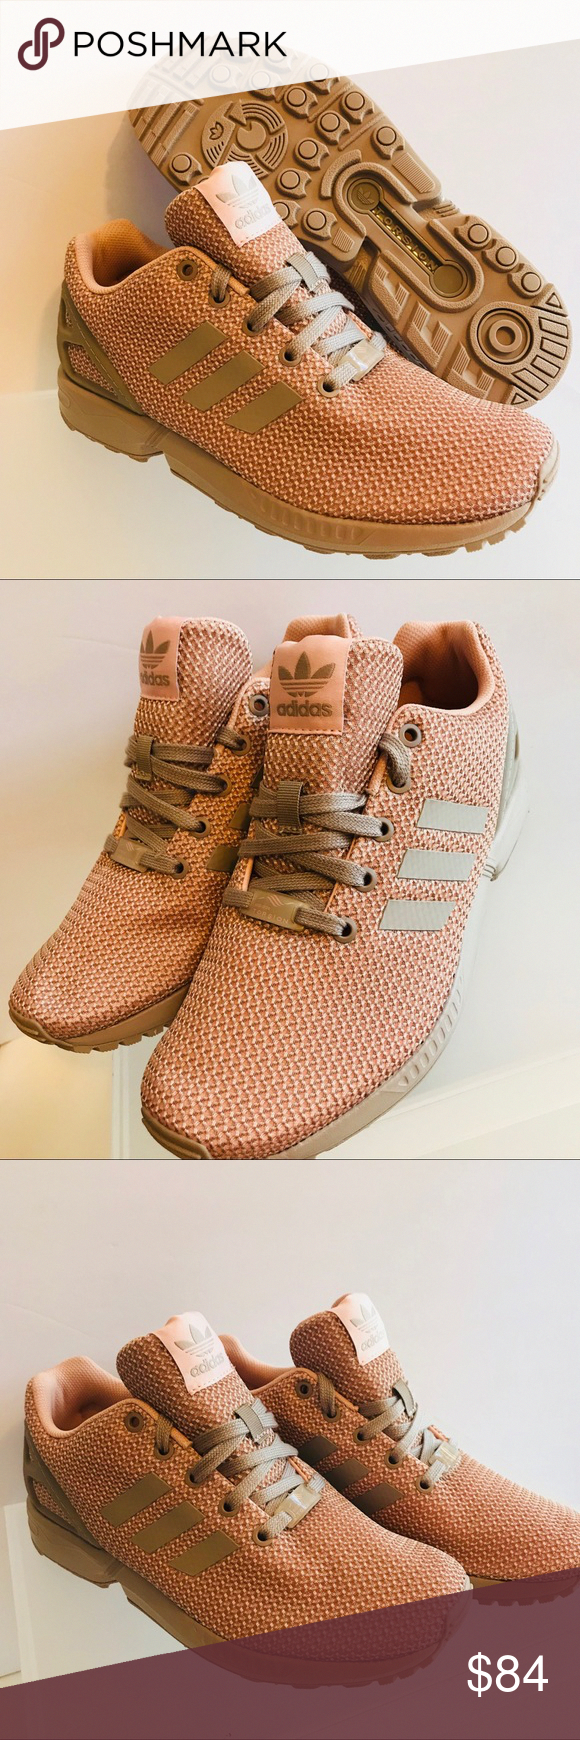 99f11b8d76463 Spotted while shopping on Poshmark  NEW ADIDAS ZX FLUX TORSION WOMEN VAPOUR  PINK GREY!  poshmark  fashion  shopping  style  adidas  Shoes   ...